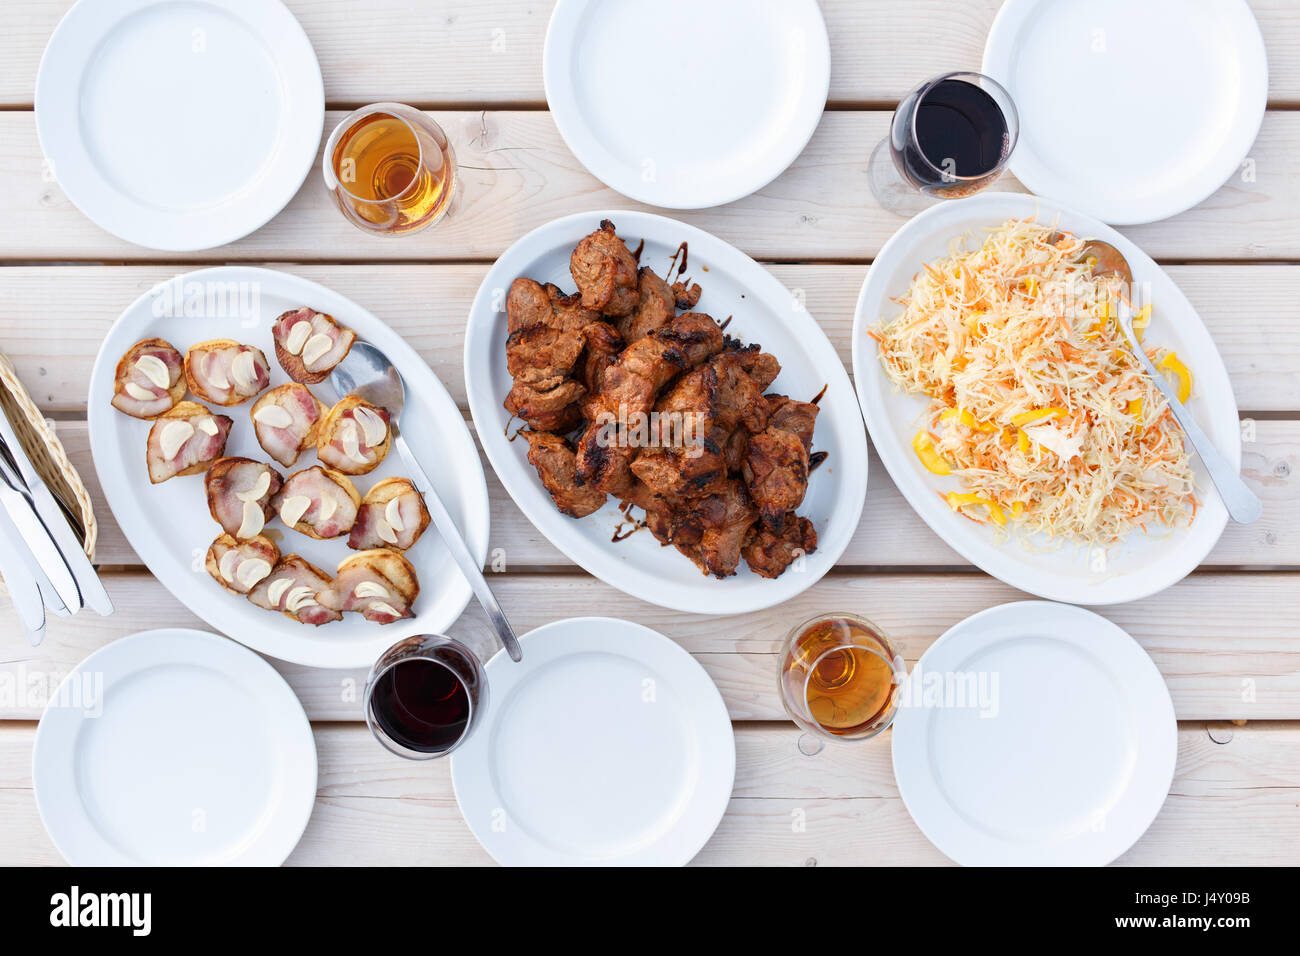 Dinner table top view - Stock Photo Top View Of Dinner Table With Shish Kebab Salad And Roasted Potatoes With Bacon Served Table With Barbecue Meat And Empty Dishes